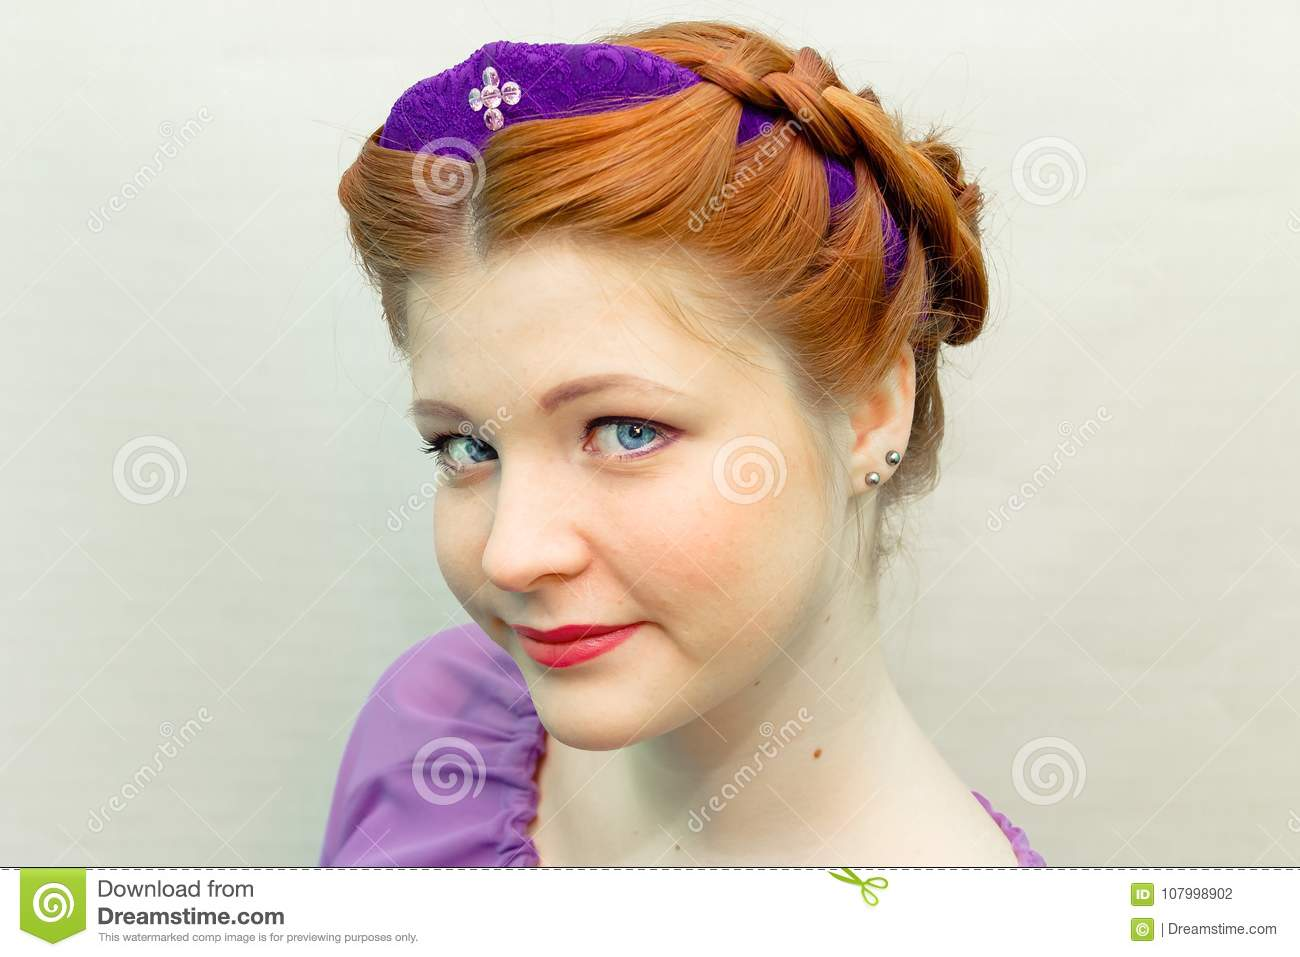 Girl with a hair style in a Slavic style